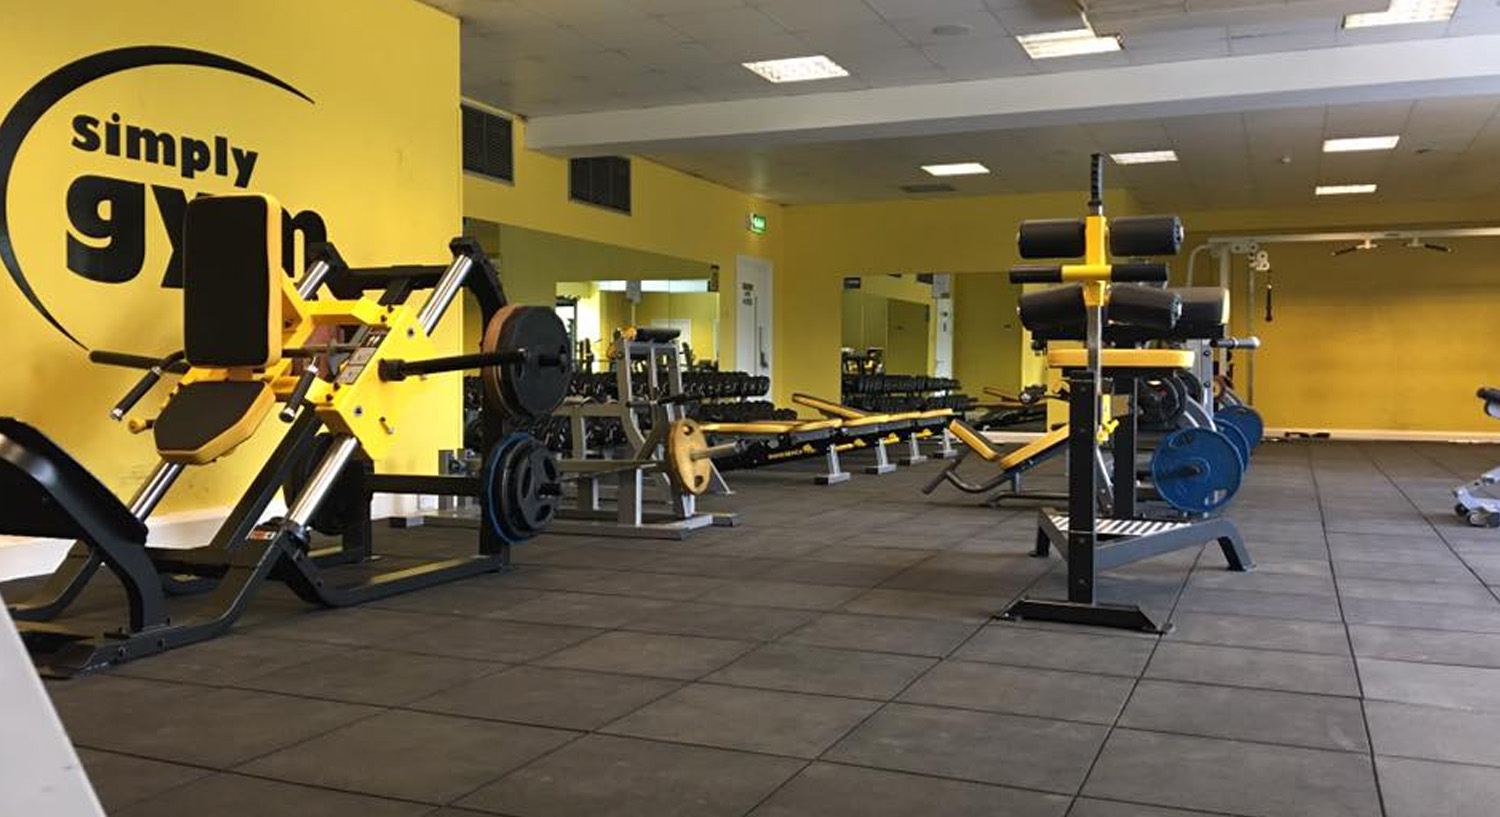 Simply Gym Swindon - Weights Section